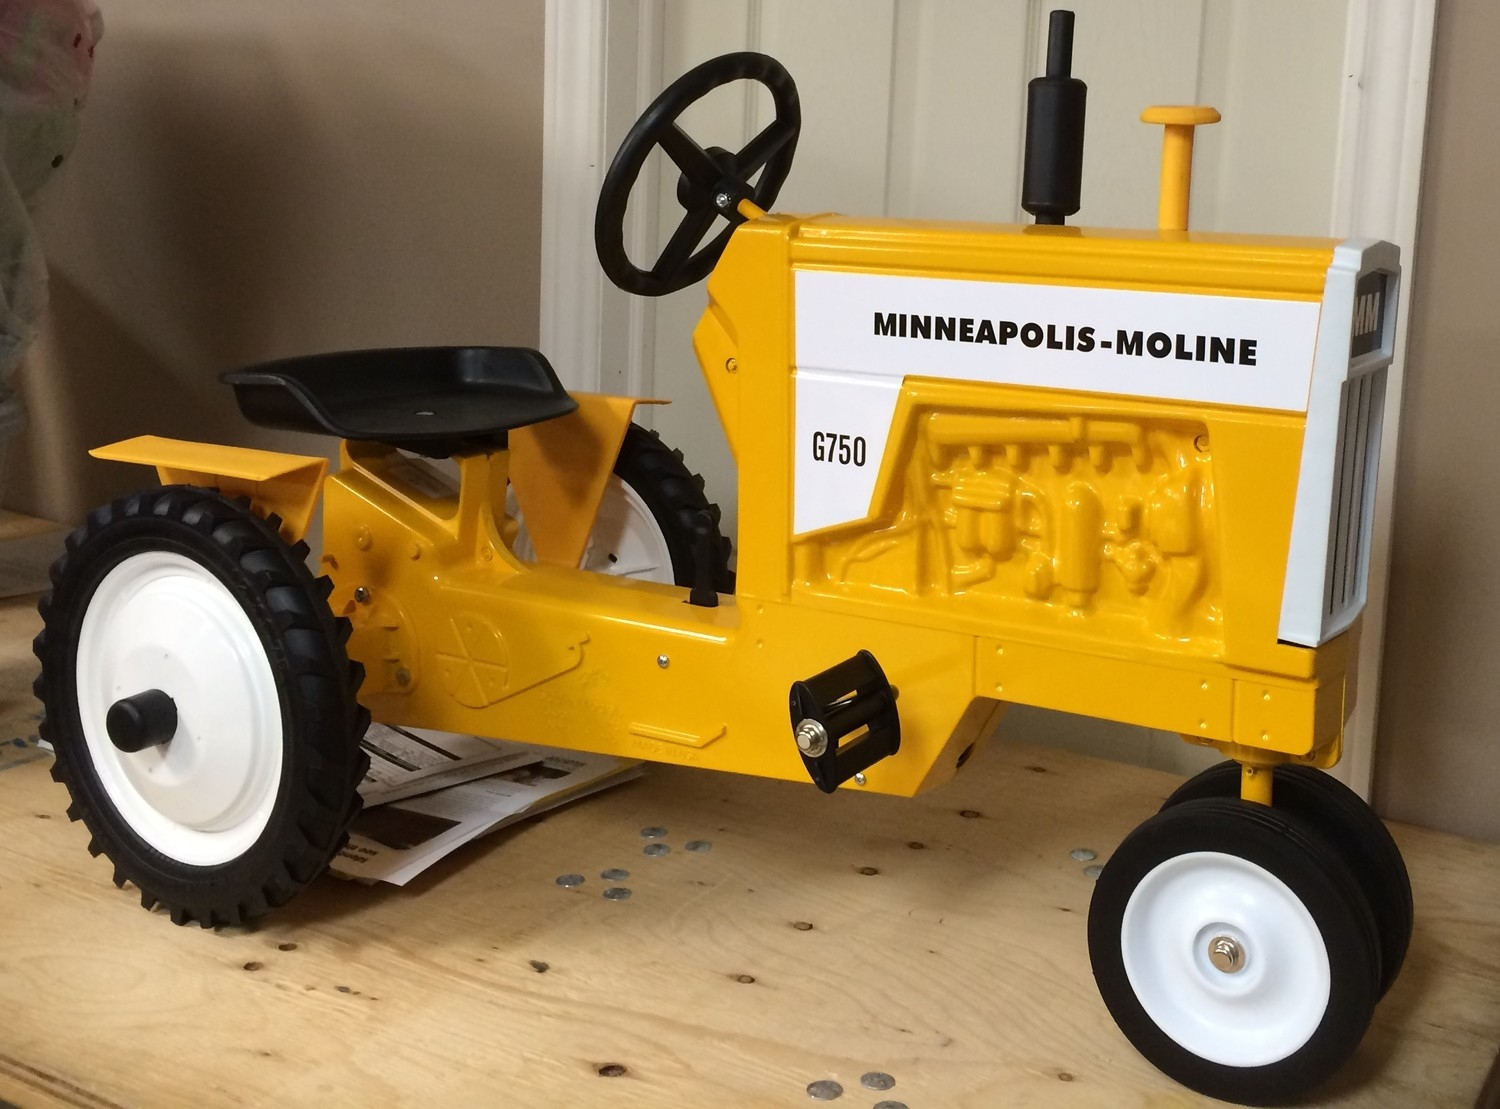 Minneapolis-Moline Pedal tractor retail price $500.00